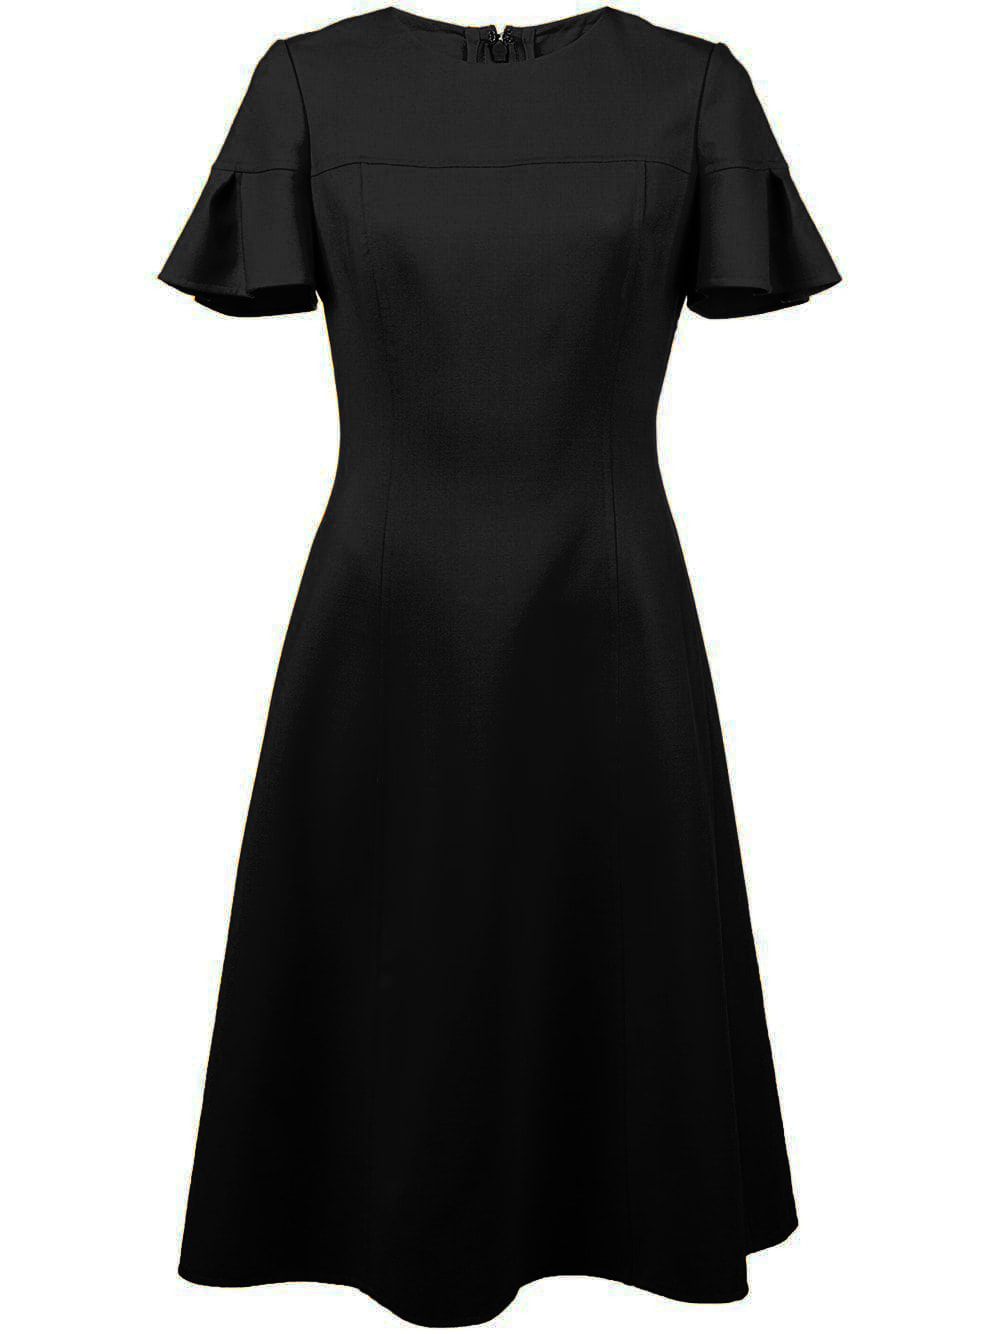 Carolina Herrera black flutter sleeve dress